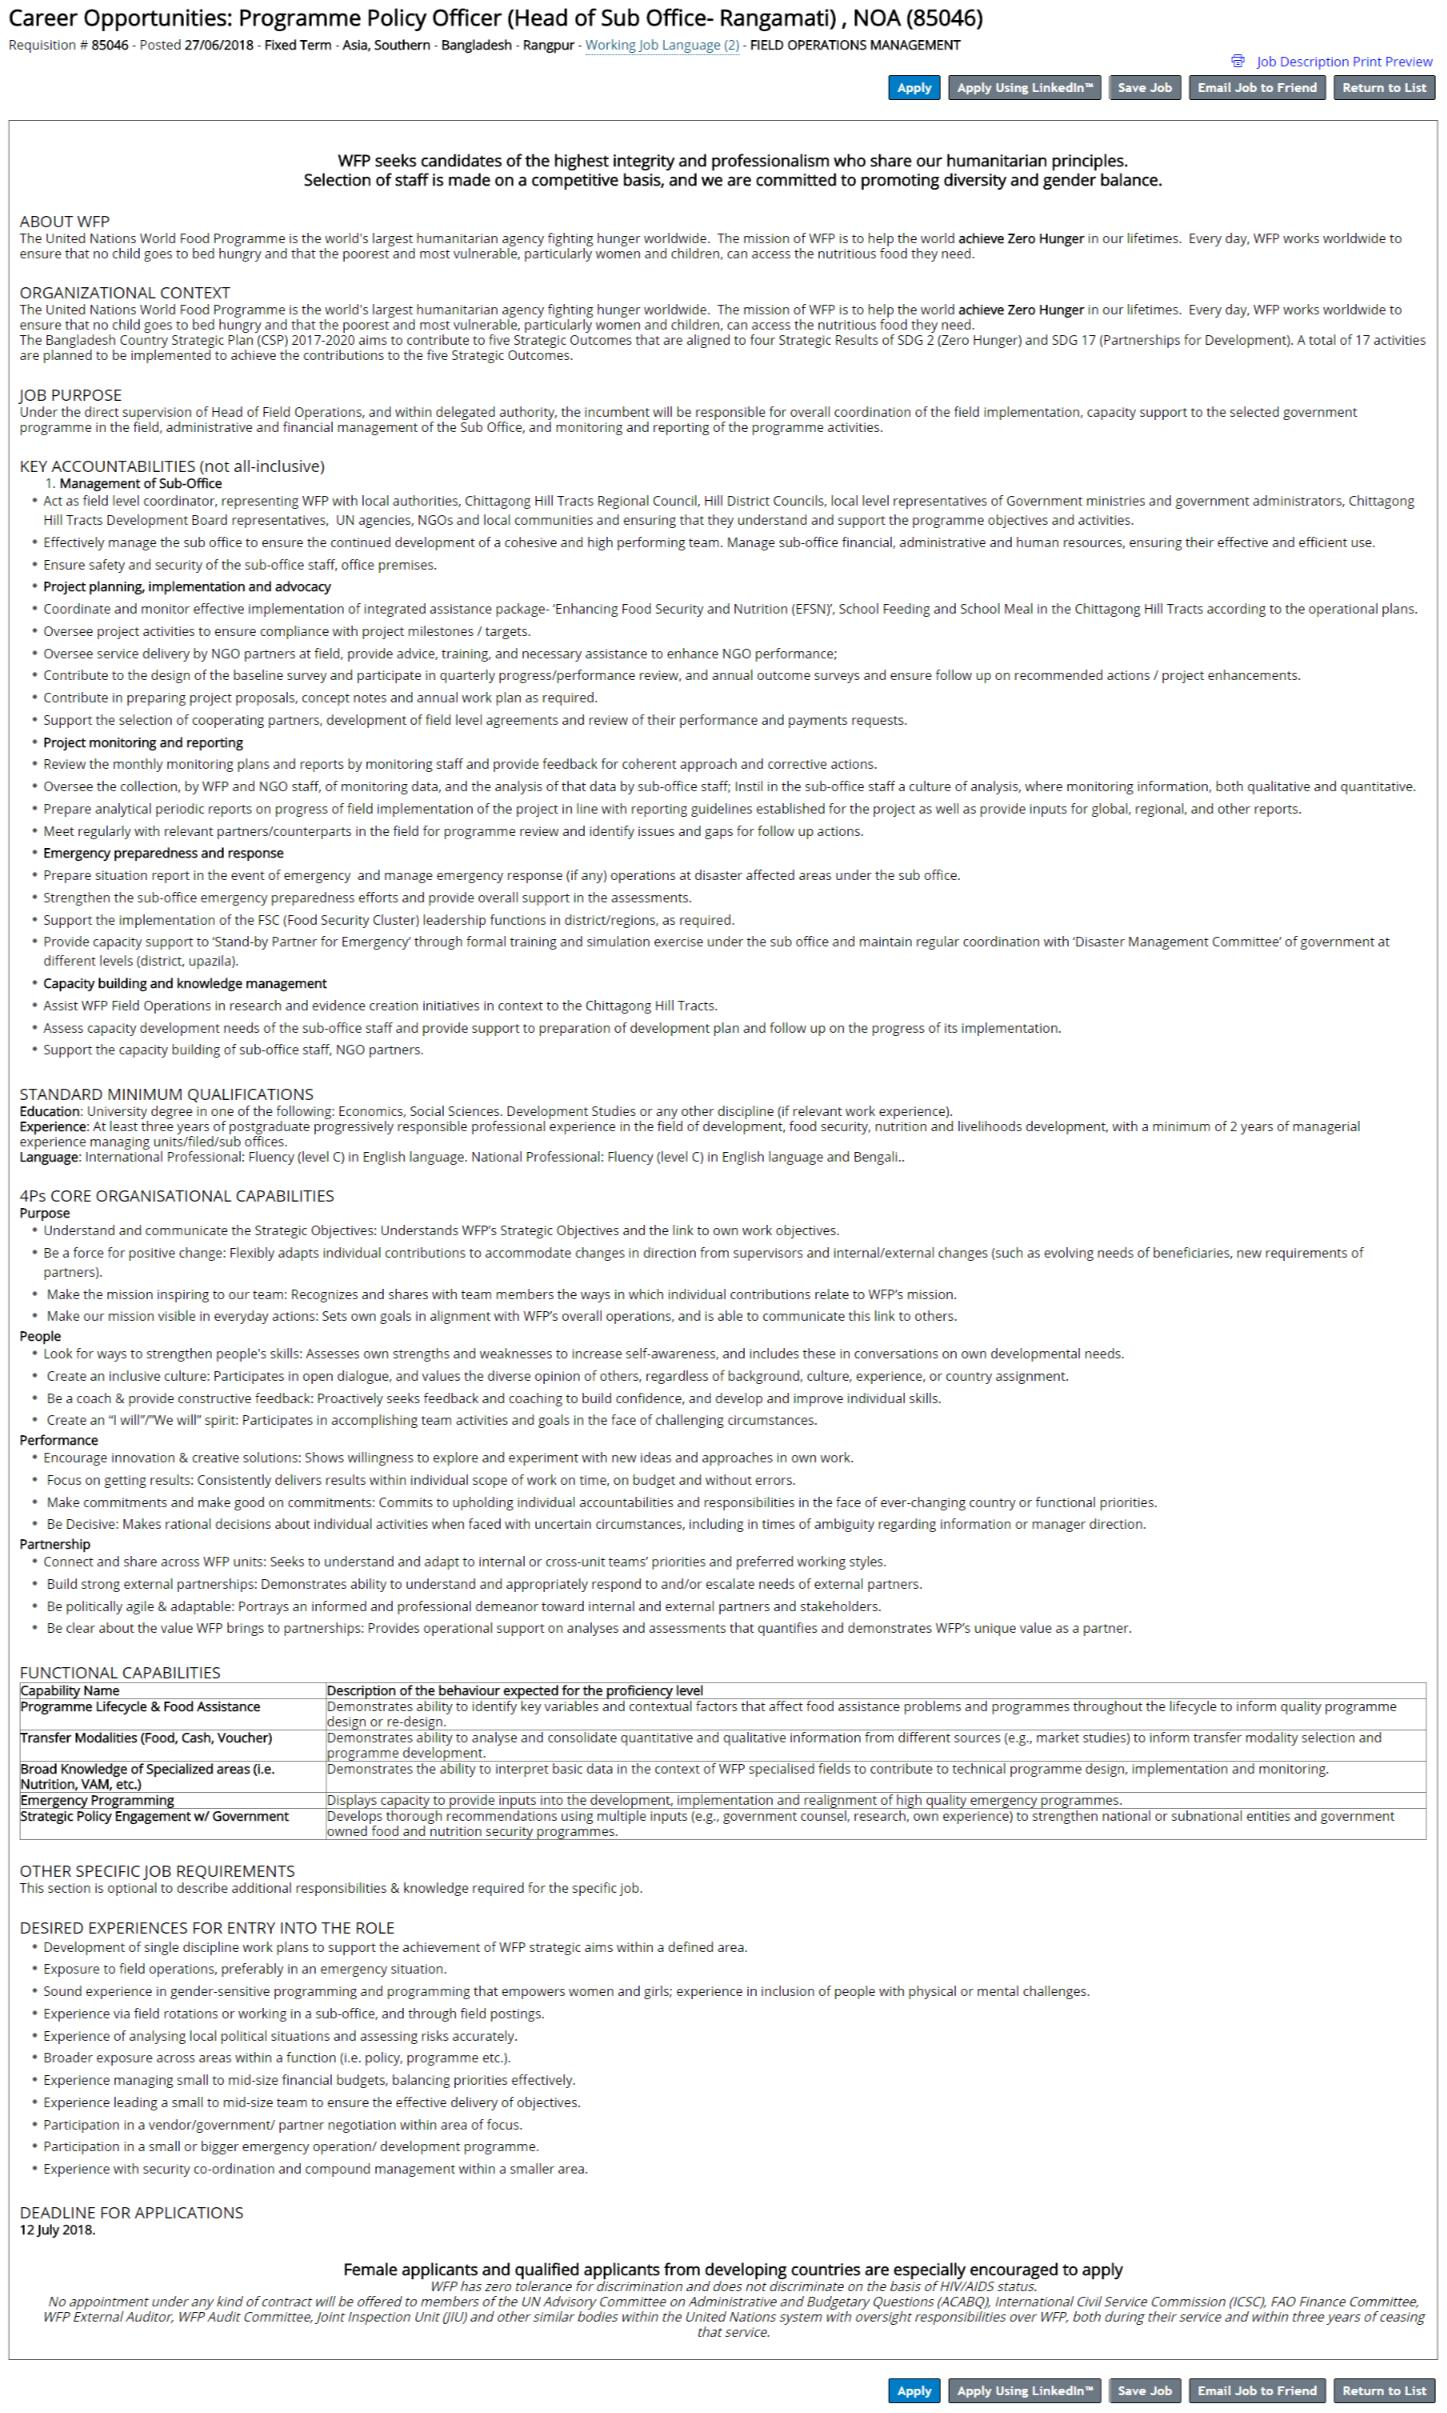 Career Opportunities_ Programme Policy Officer (Head of Sub Office- Rangamati) , NOA (85046)